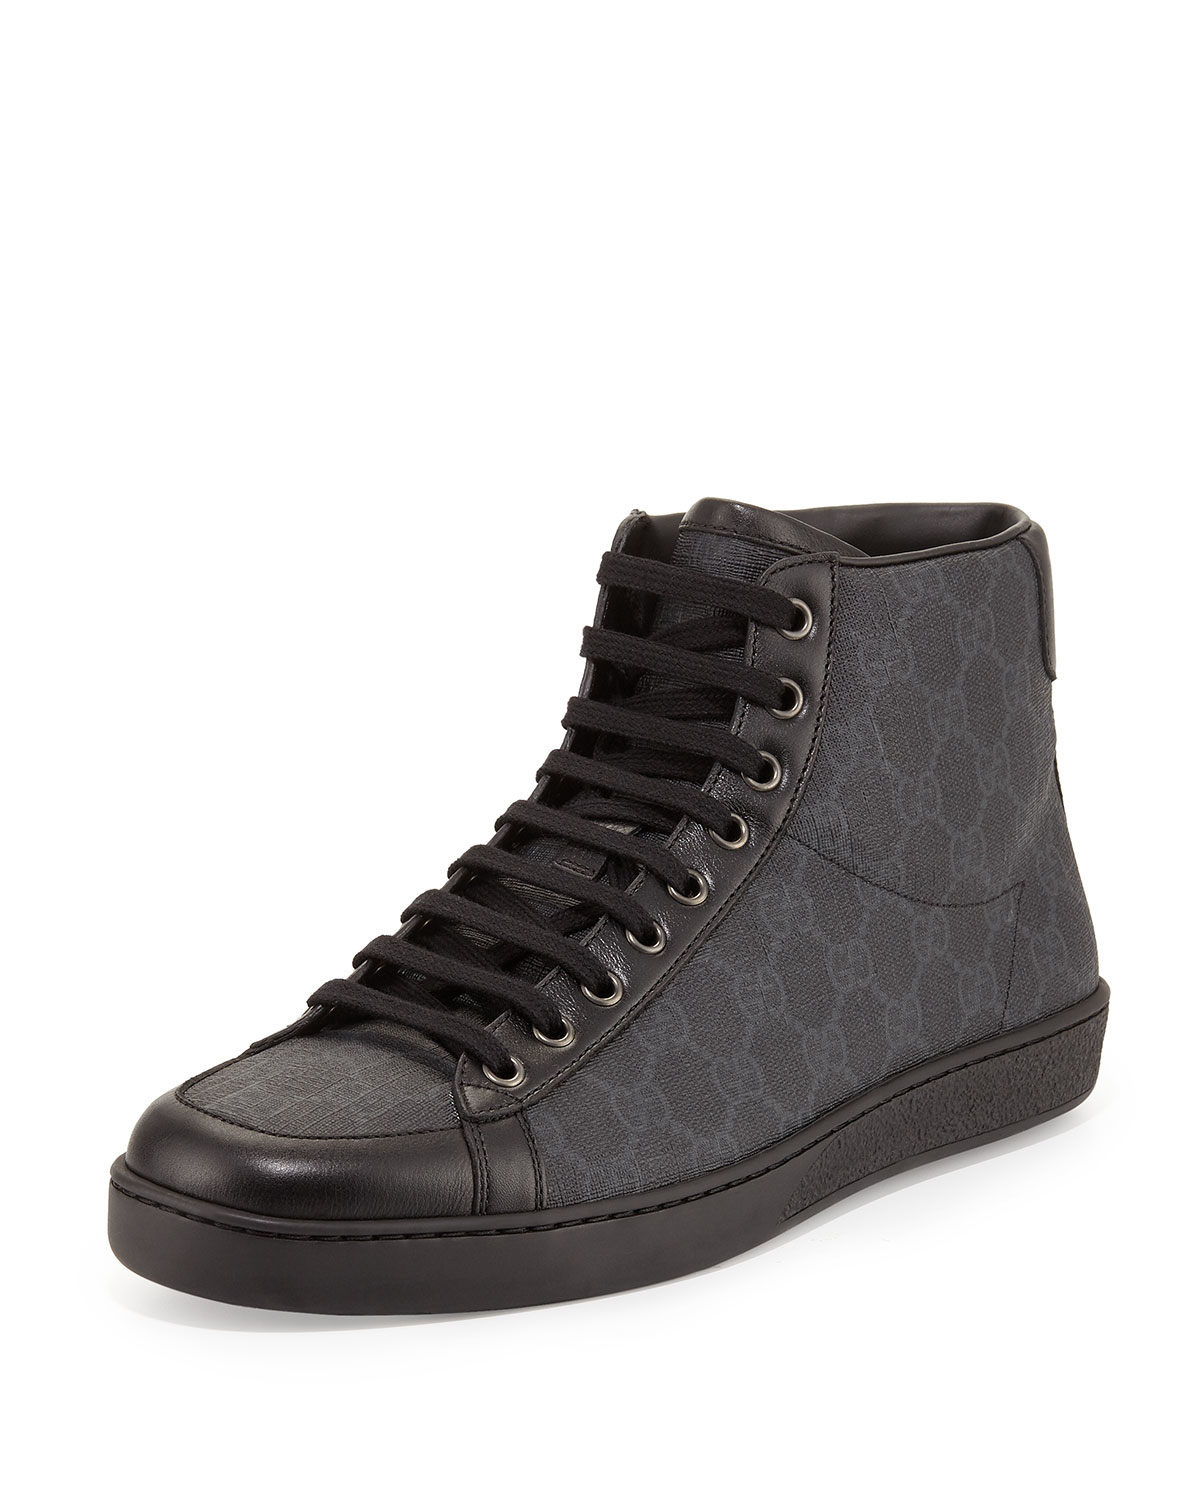 lyst gucci brooklyn gg supreme hightop sneaker in black